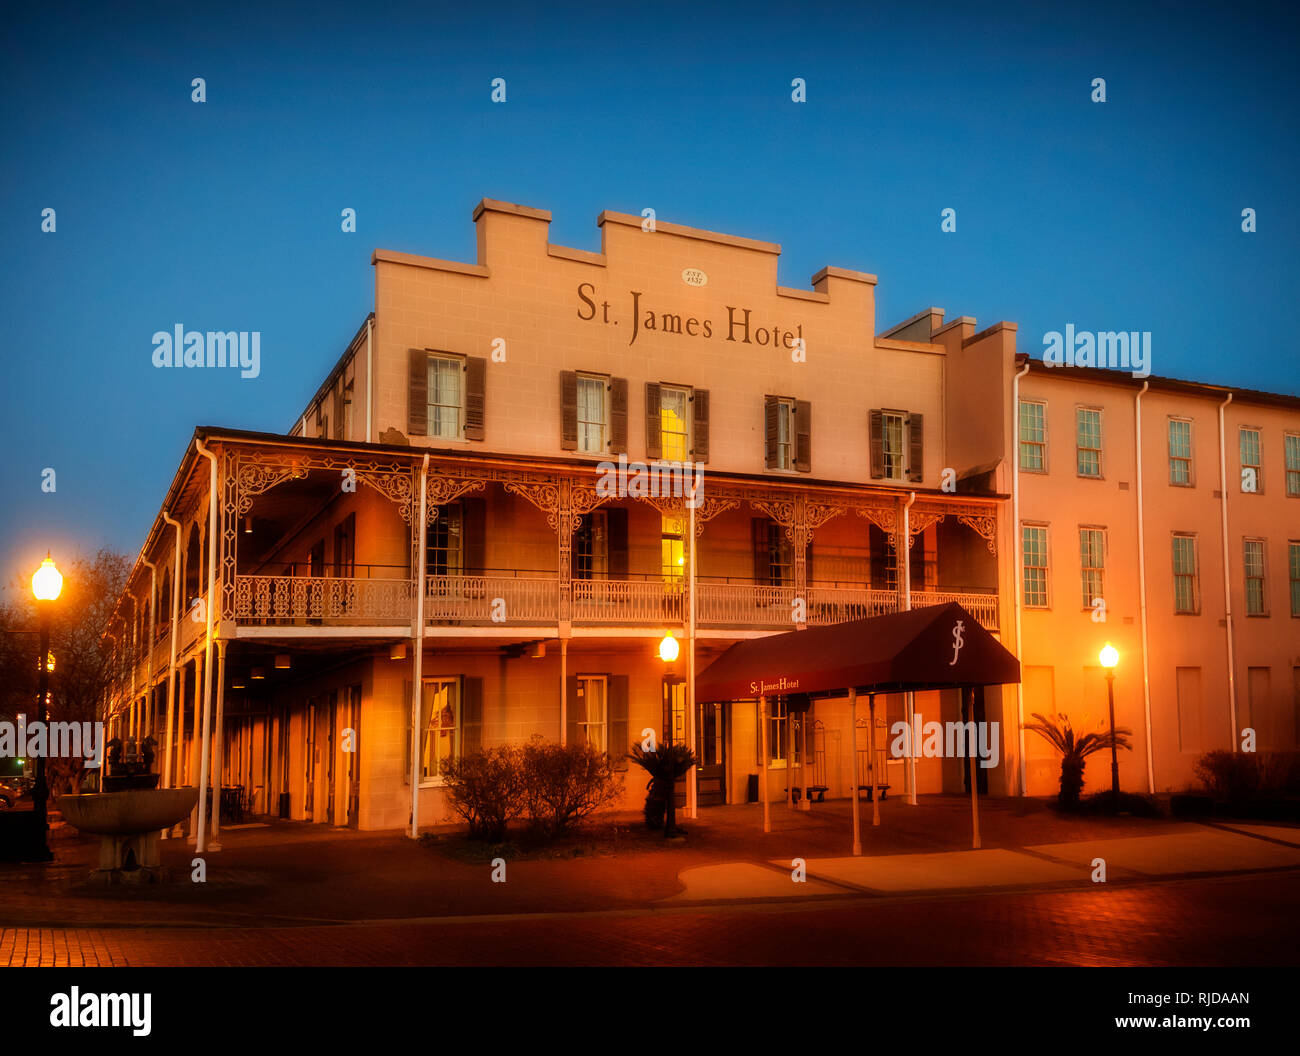 The St. James Hotel is pictured at dusk, Feb. 14, 2015, in Selma, Alabama. The hotel was built in 1837. - Stock Image